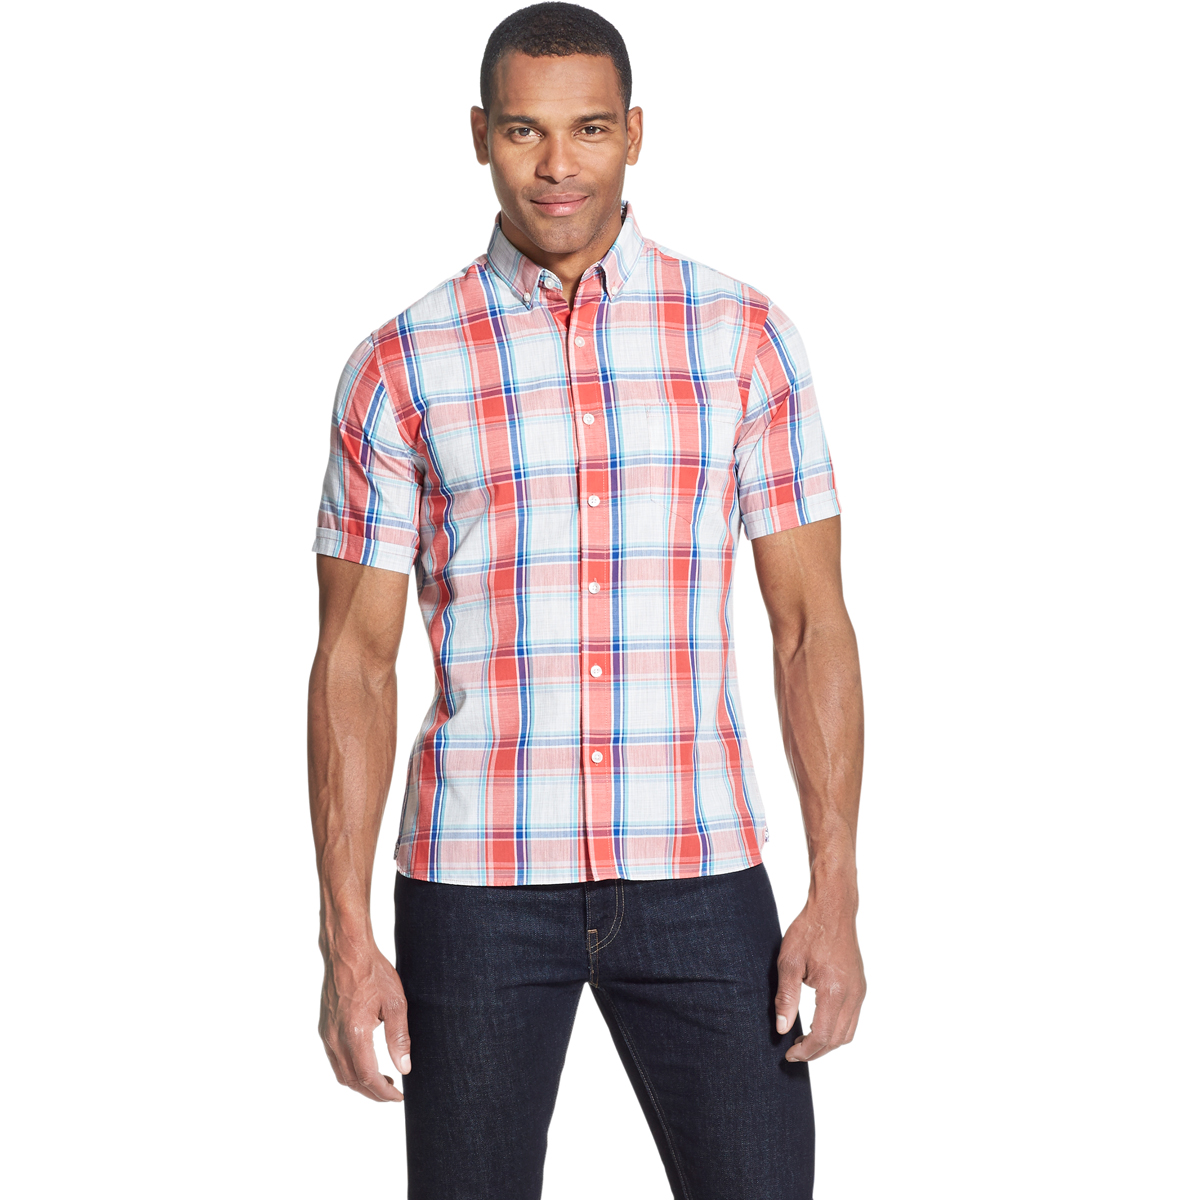 Van Heusen Men's Short-Sleeve Never Tuck Button Down Shirt - Red, L